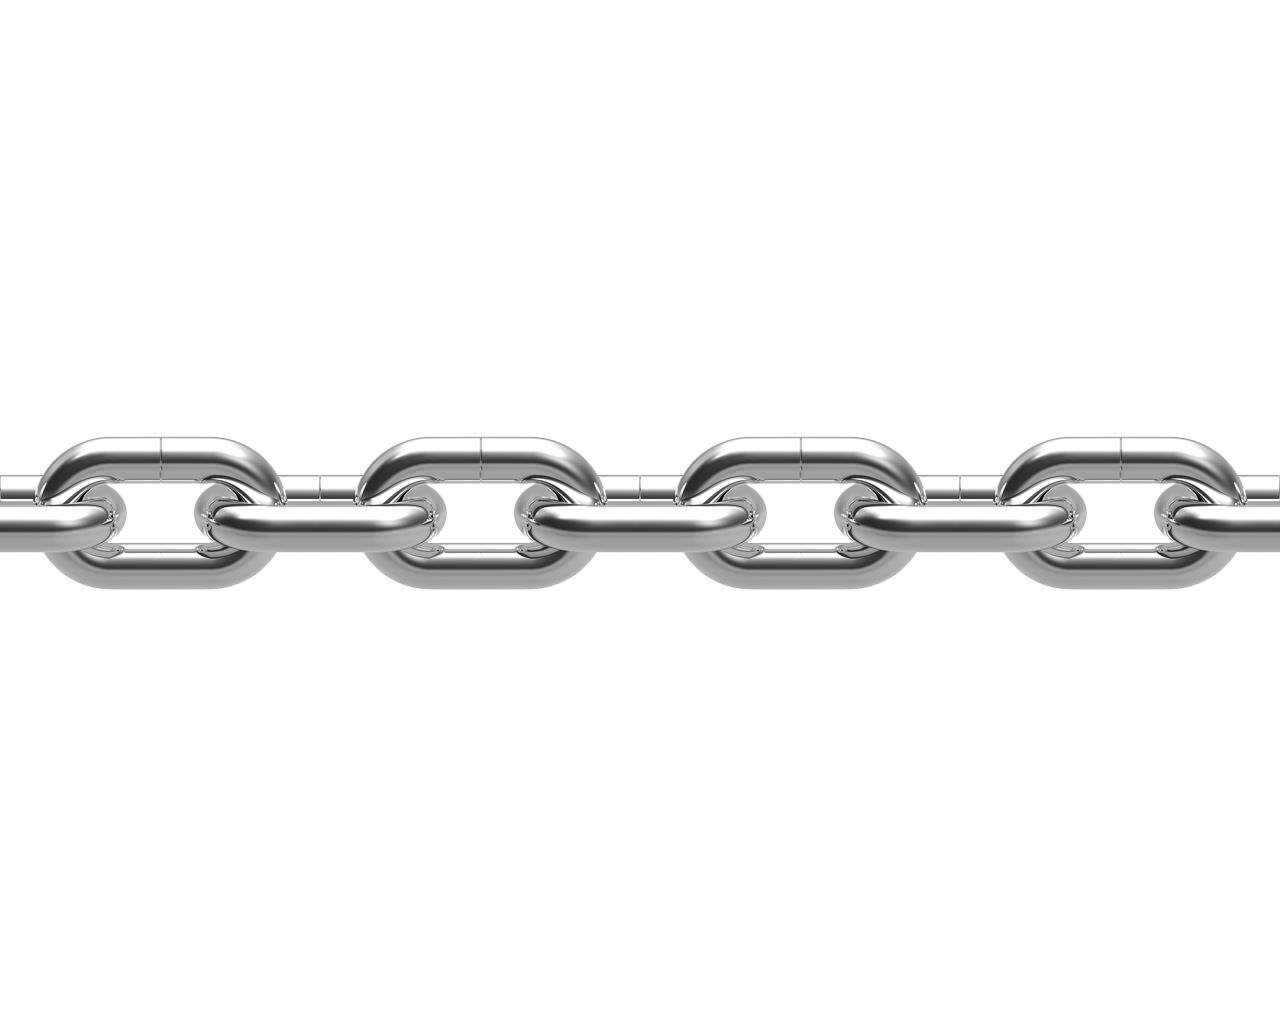 Chain PNG Transparent Images.